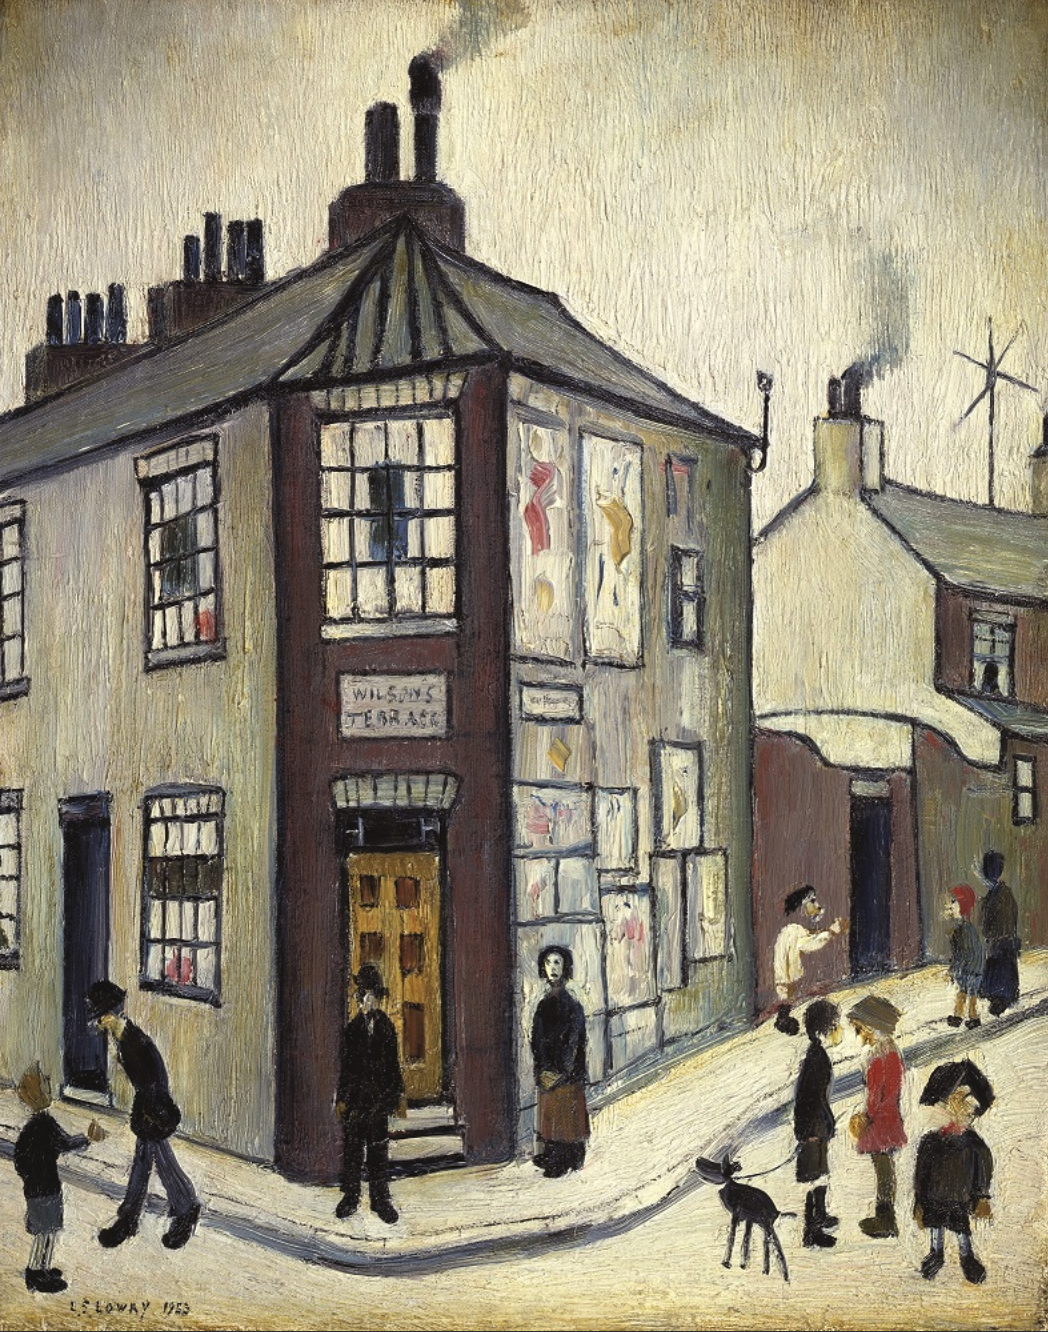 Wilson's Terrace (1953) by Laurence Stephen Lowry (1887 - 1976), English artist.